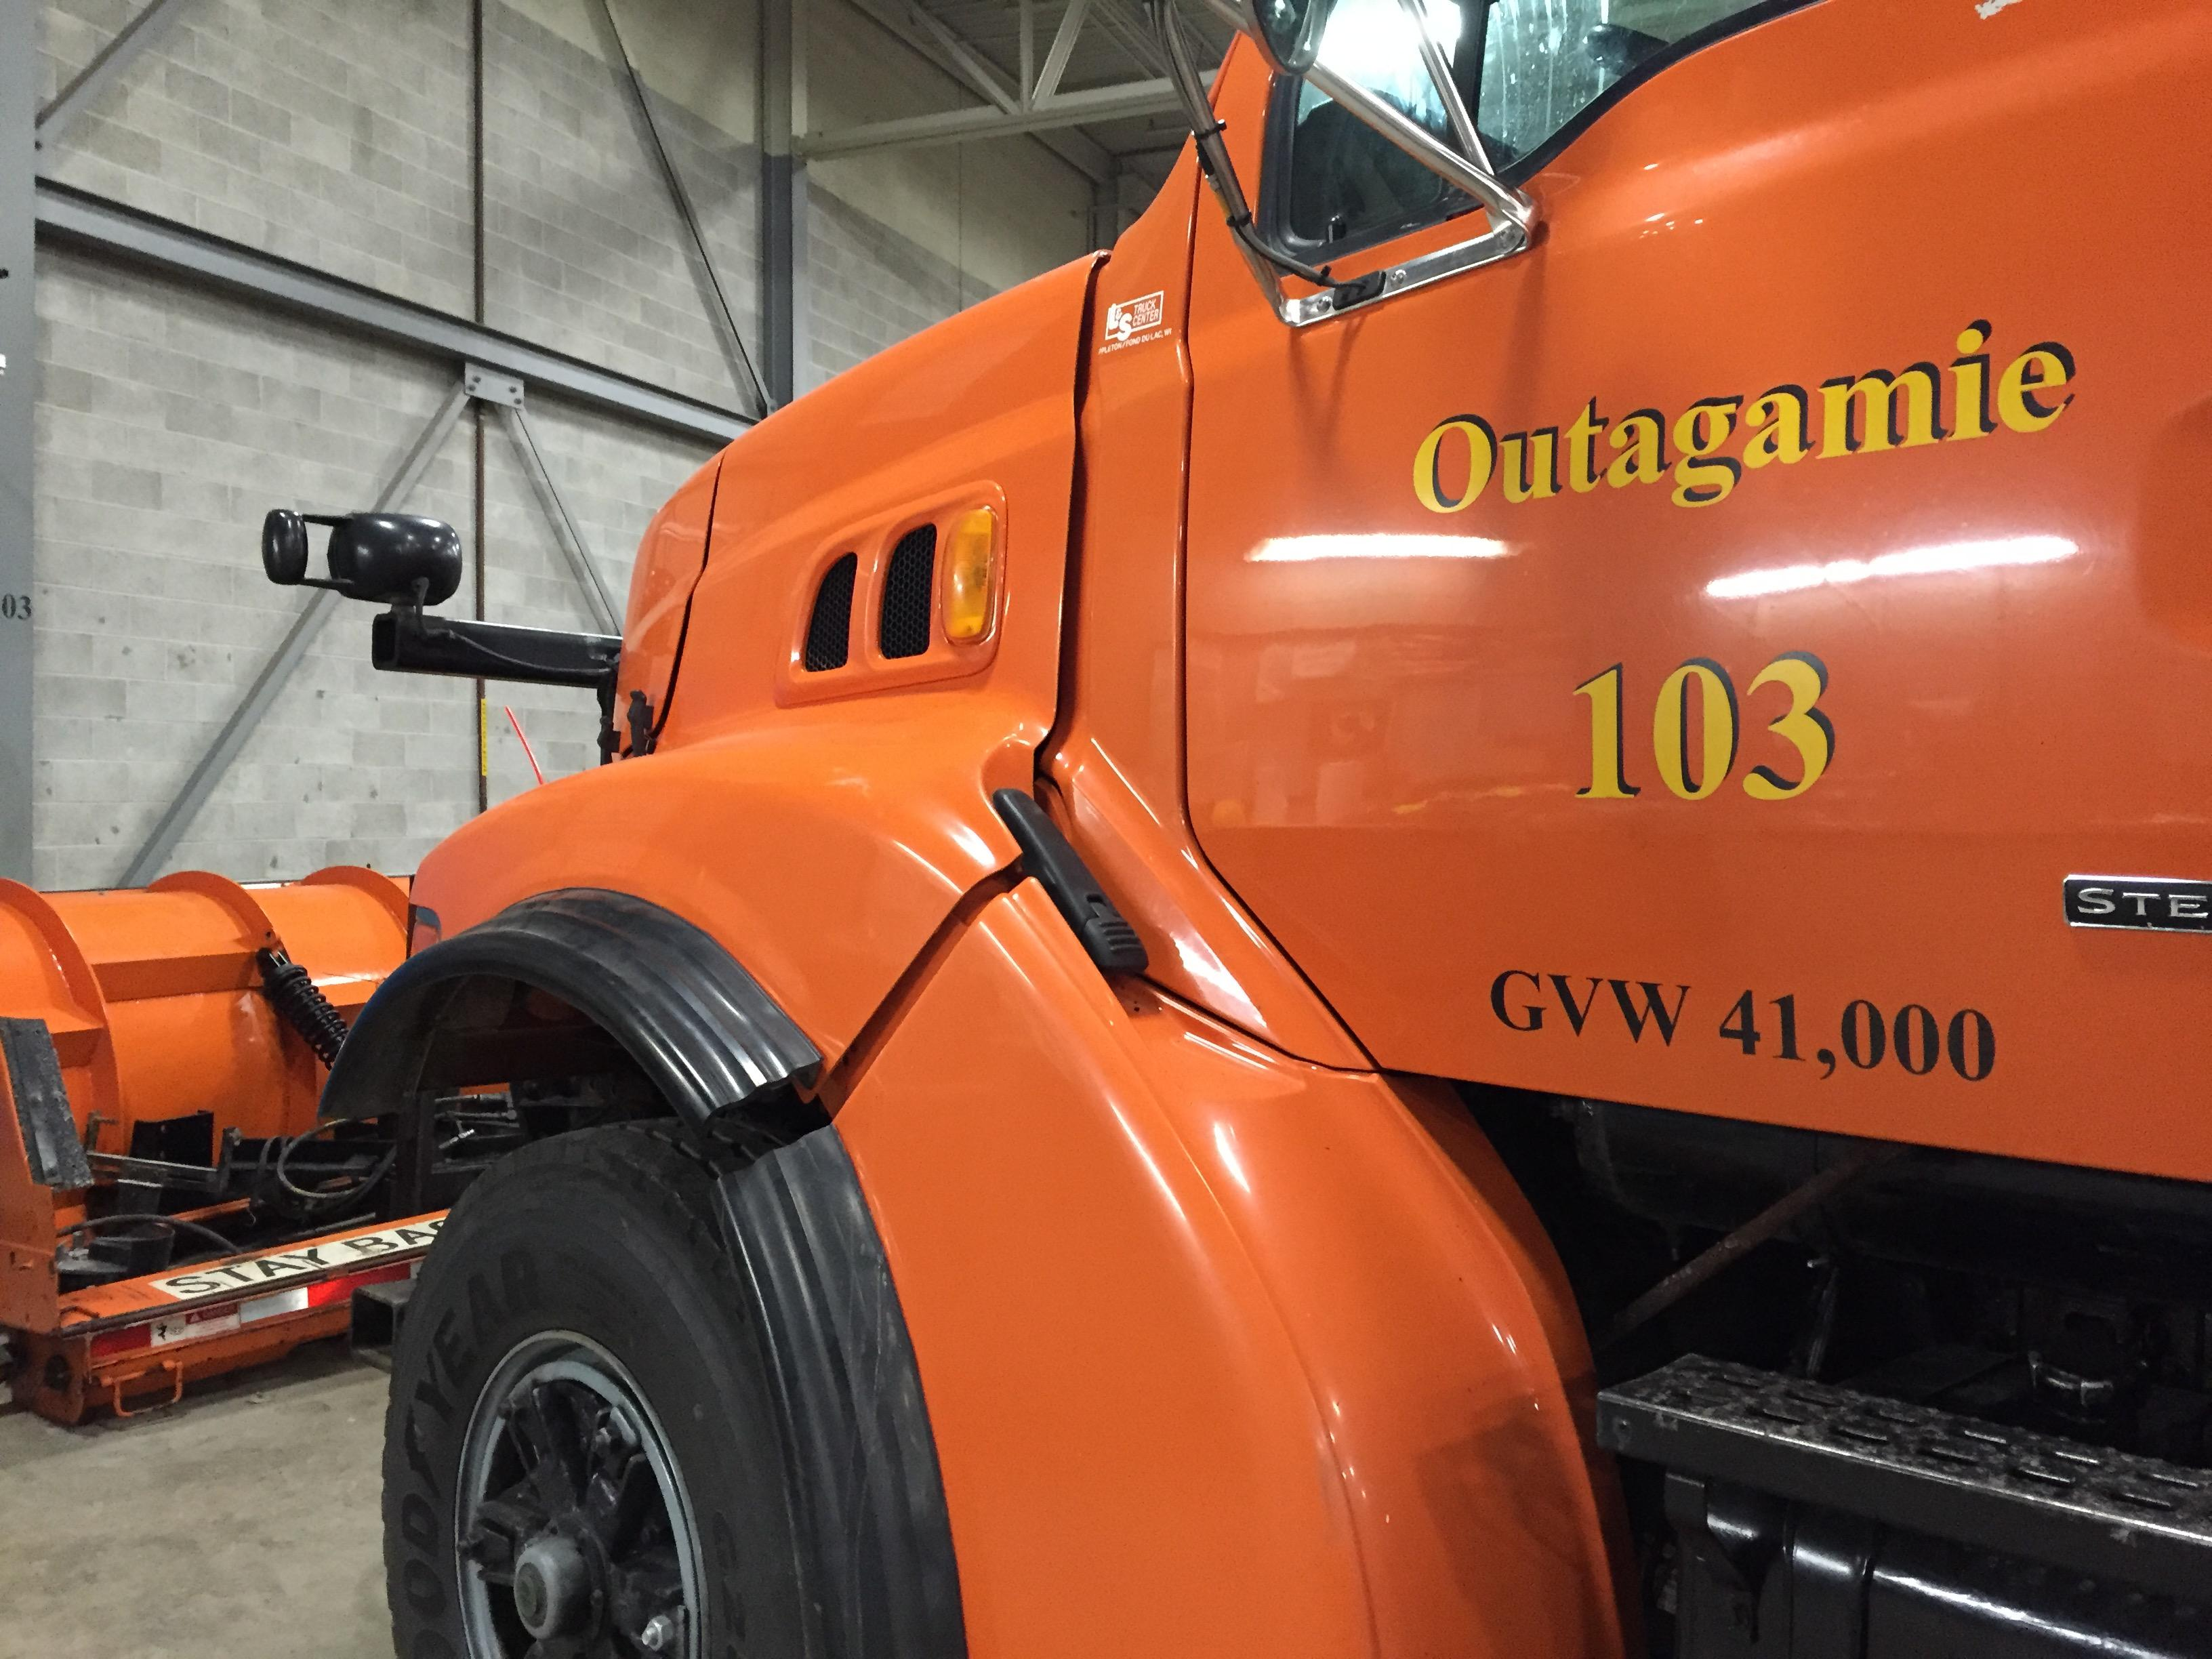 Outagamie County Highway Department Truck (WLUK/Gabrielle Mays)